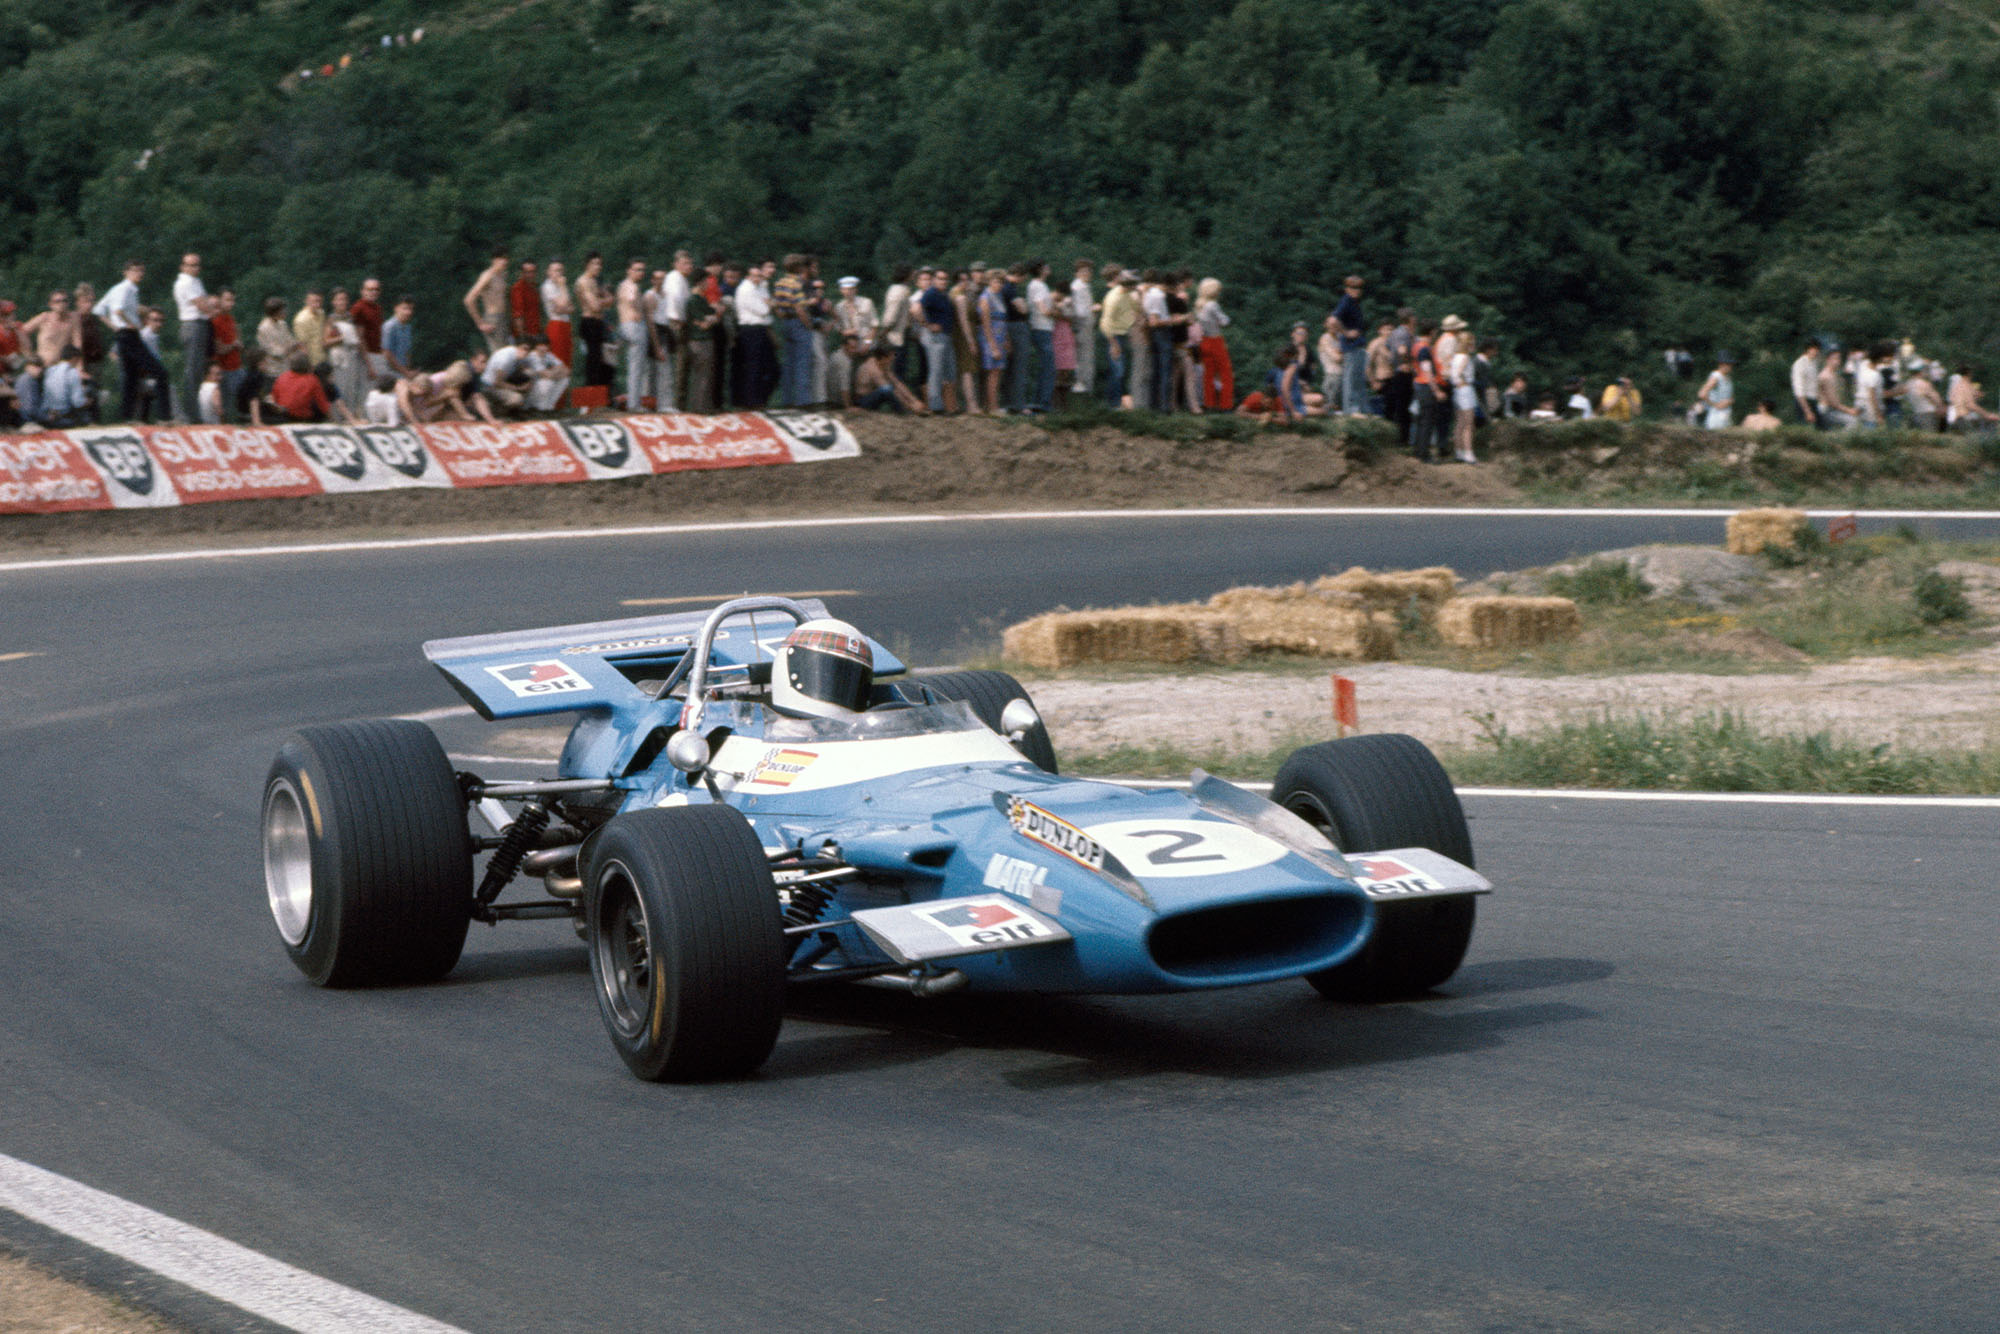 Jackie Stewart in his Matra at the 1969 French Grand Prix.